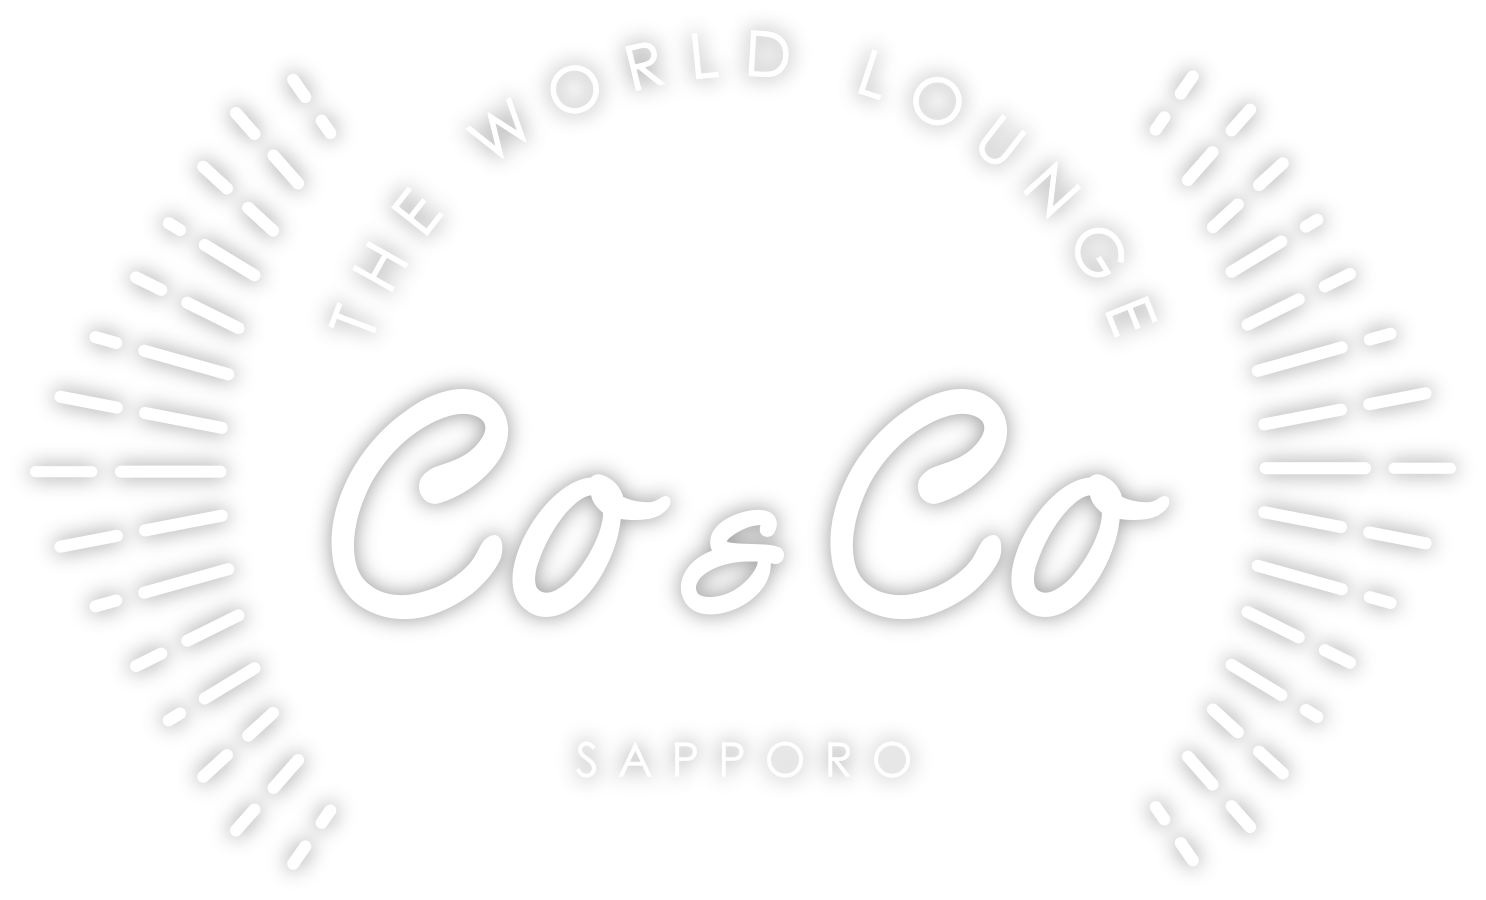 THE WORLD LOUNGE Co&Co SAPPORO